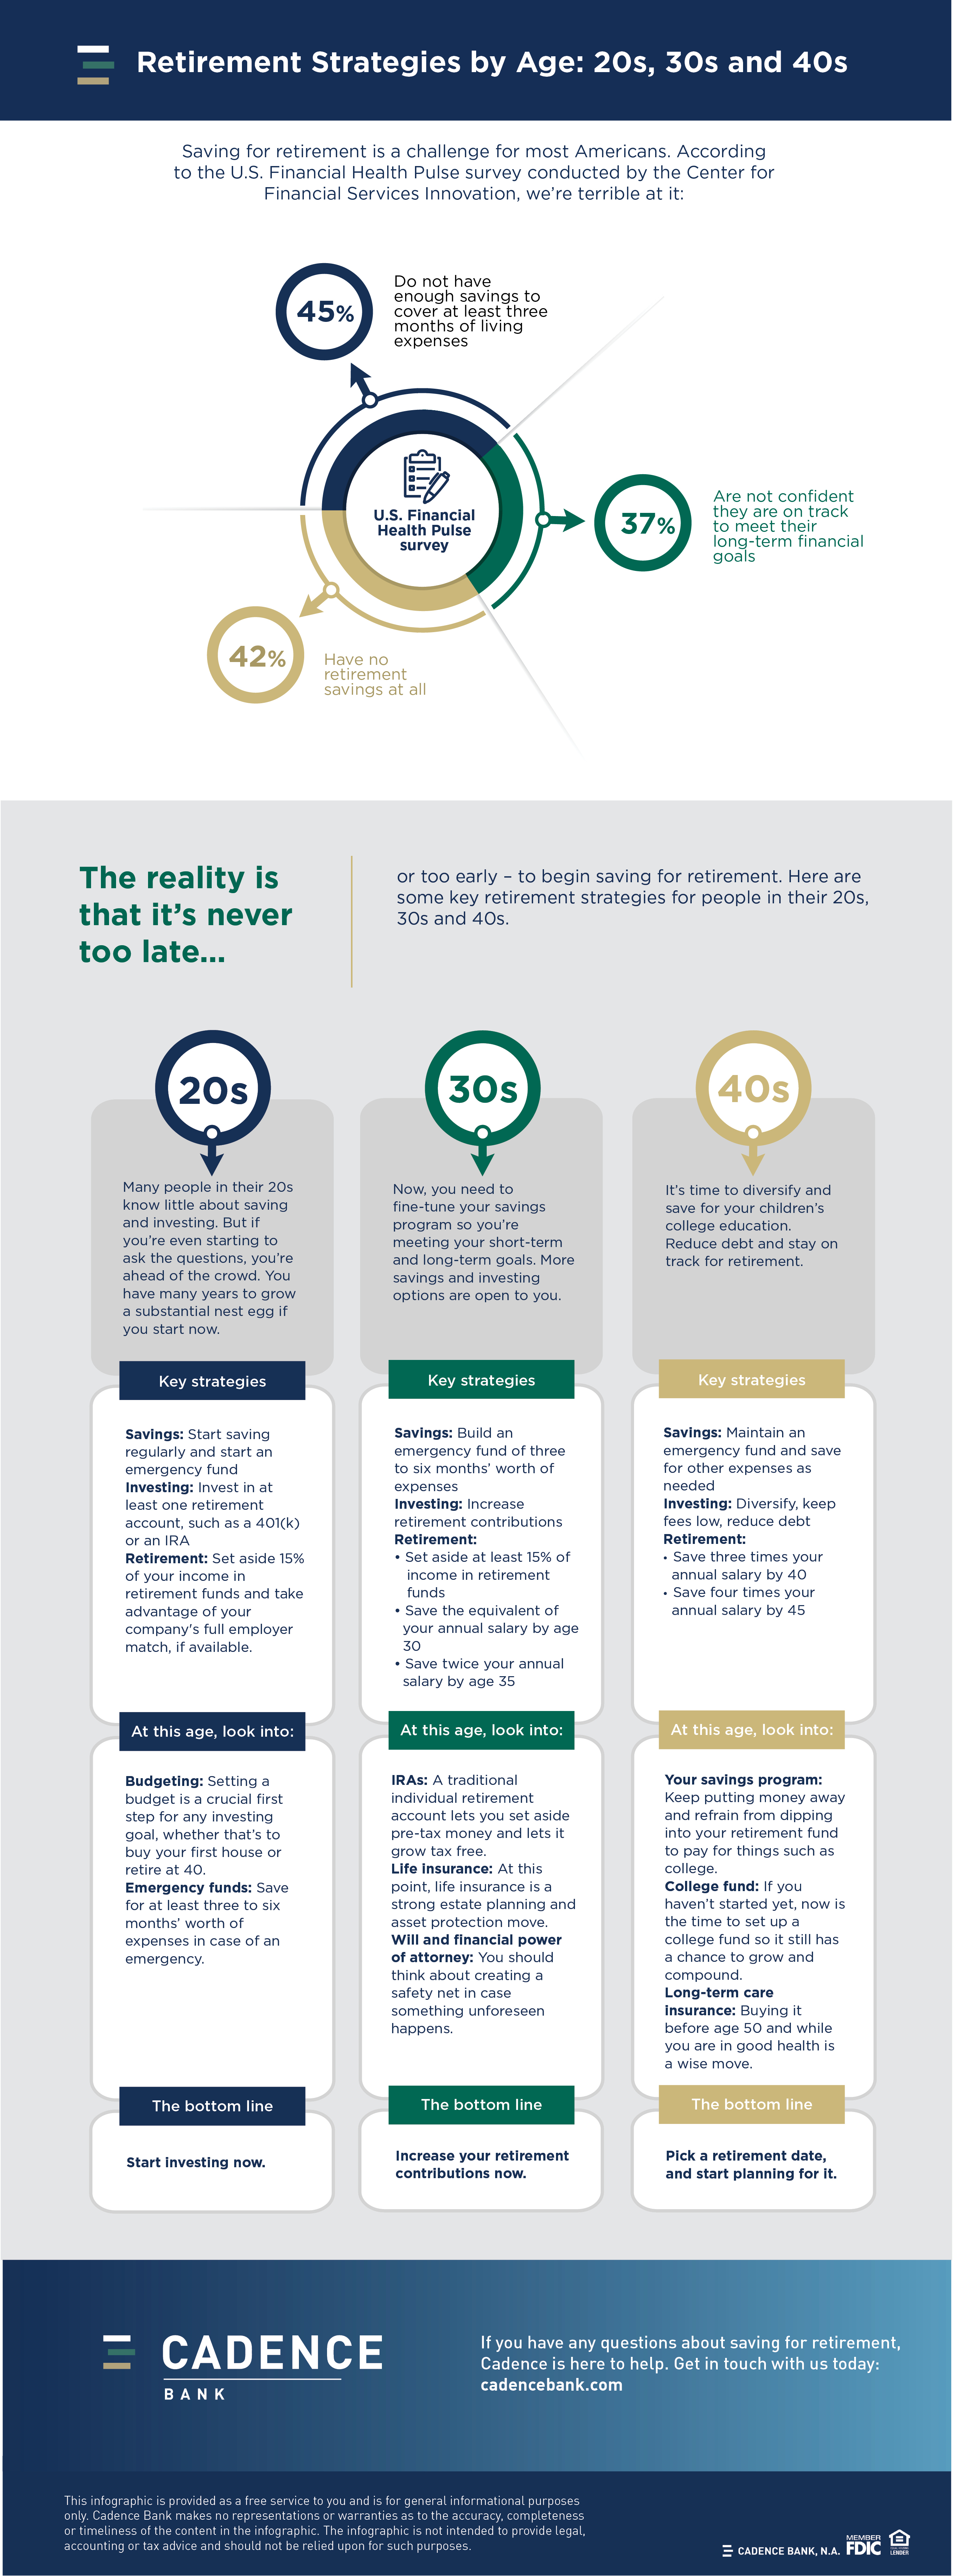 Retirement Strategies by Age: 20s, 30s and 40s [Infographic]